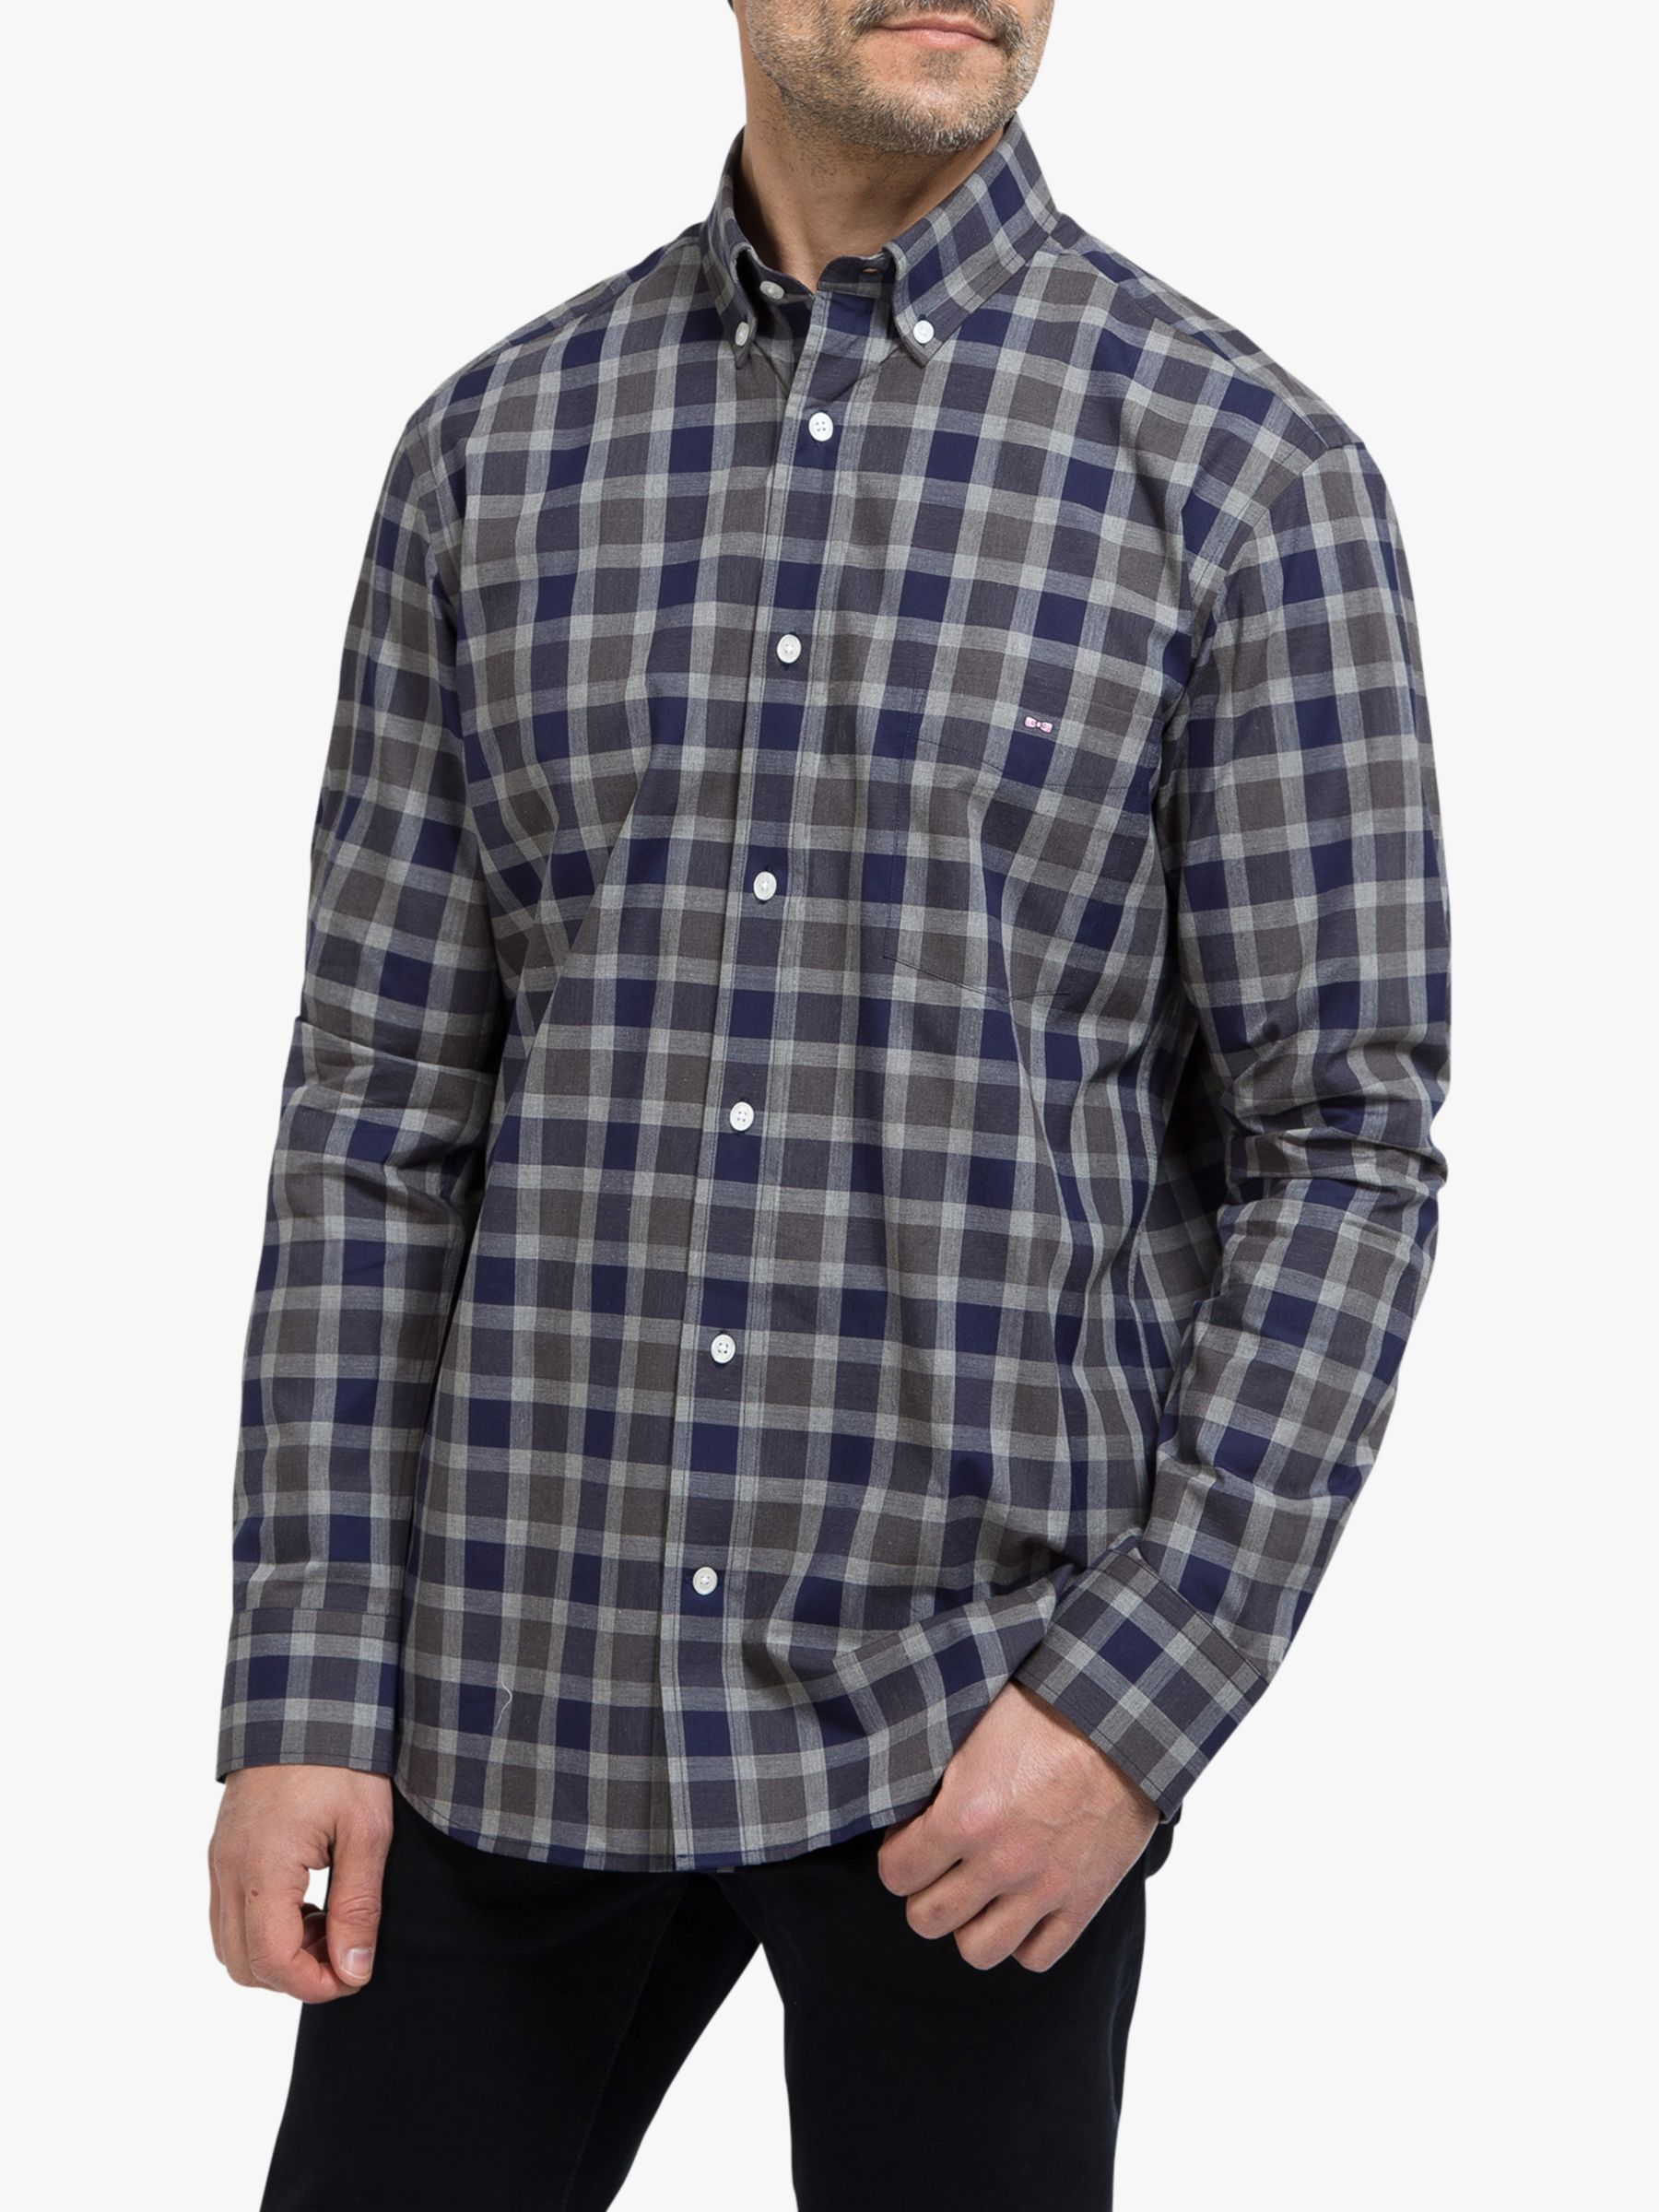 Eden Park Eden Park Cotton Check Regular Fit Shirt, Blue/Grey